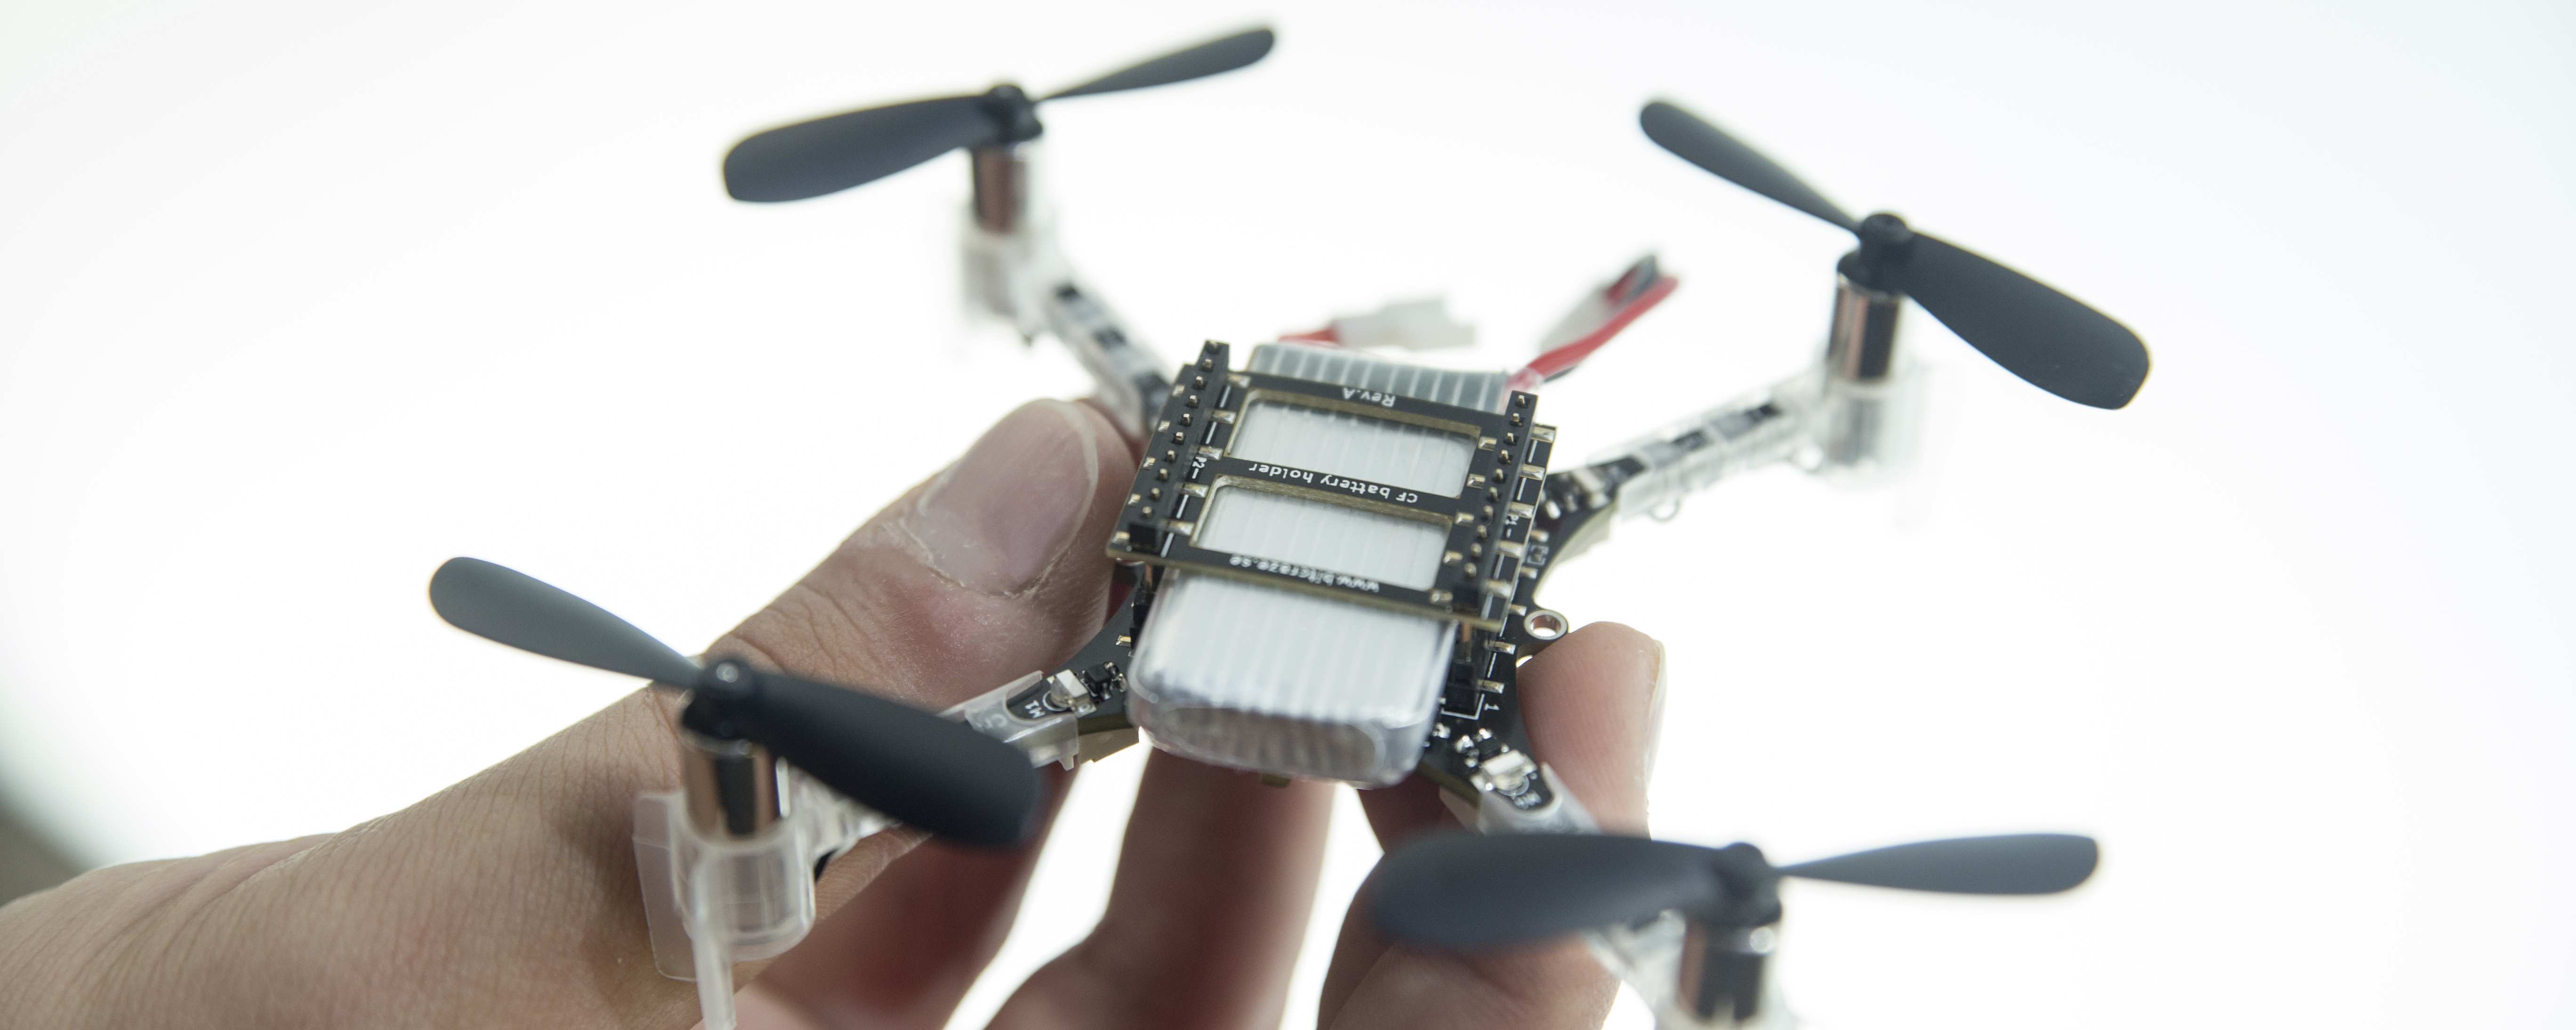 Photo of a small drone